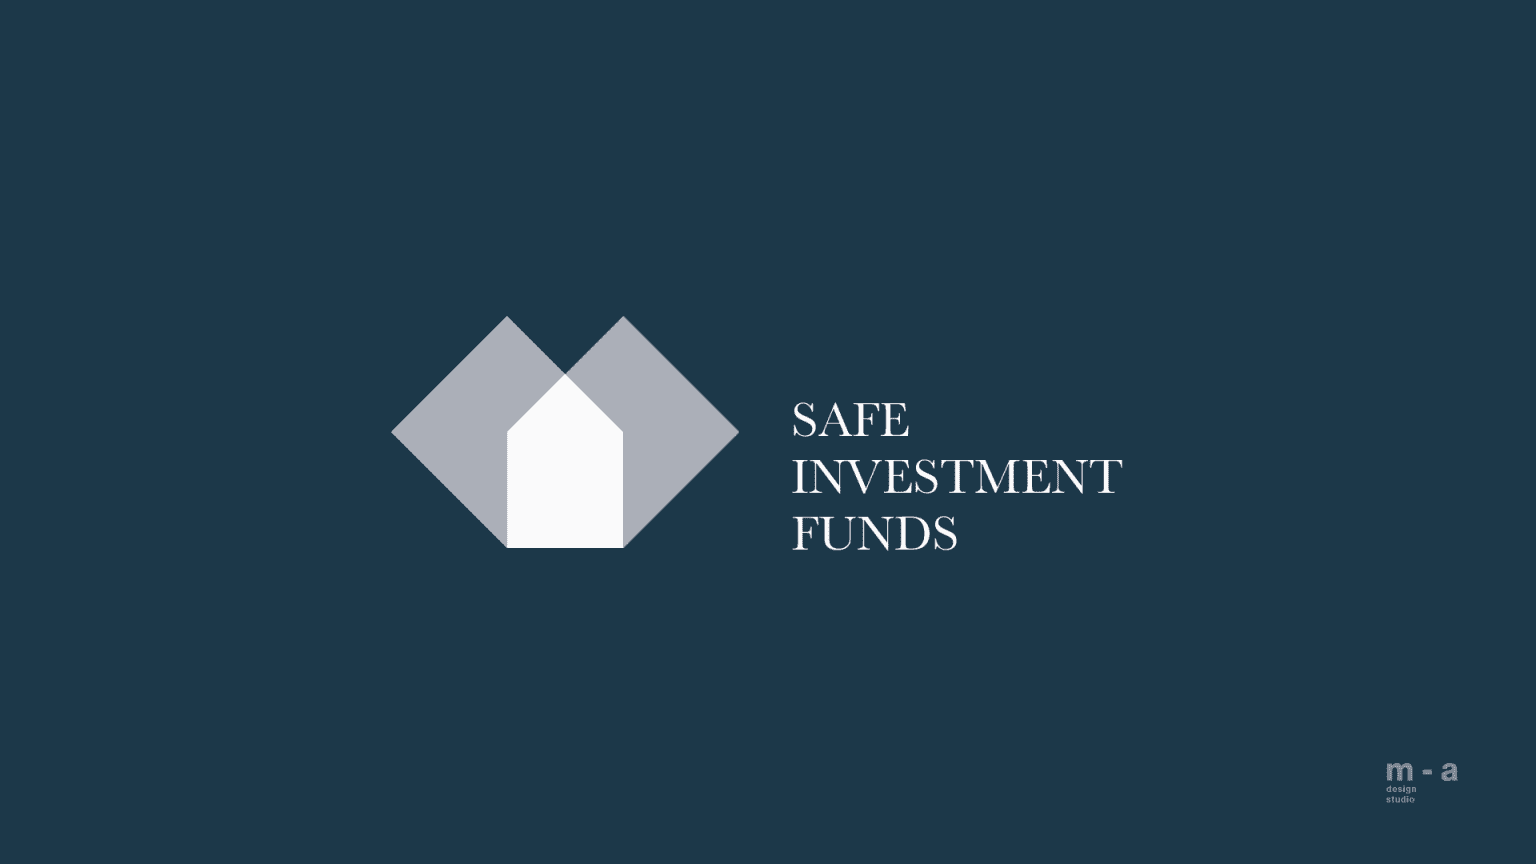 Safe Investment Funds Identity